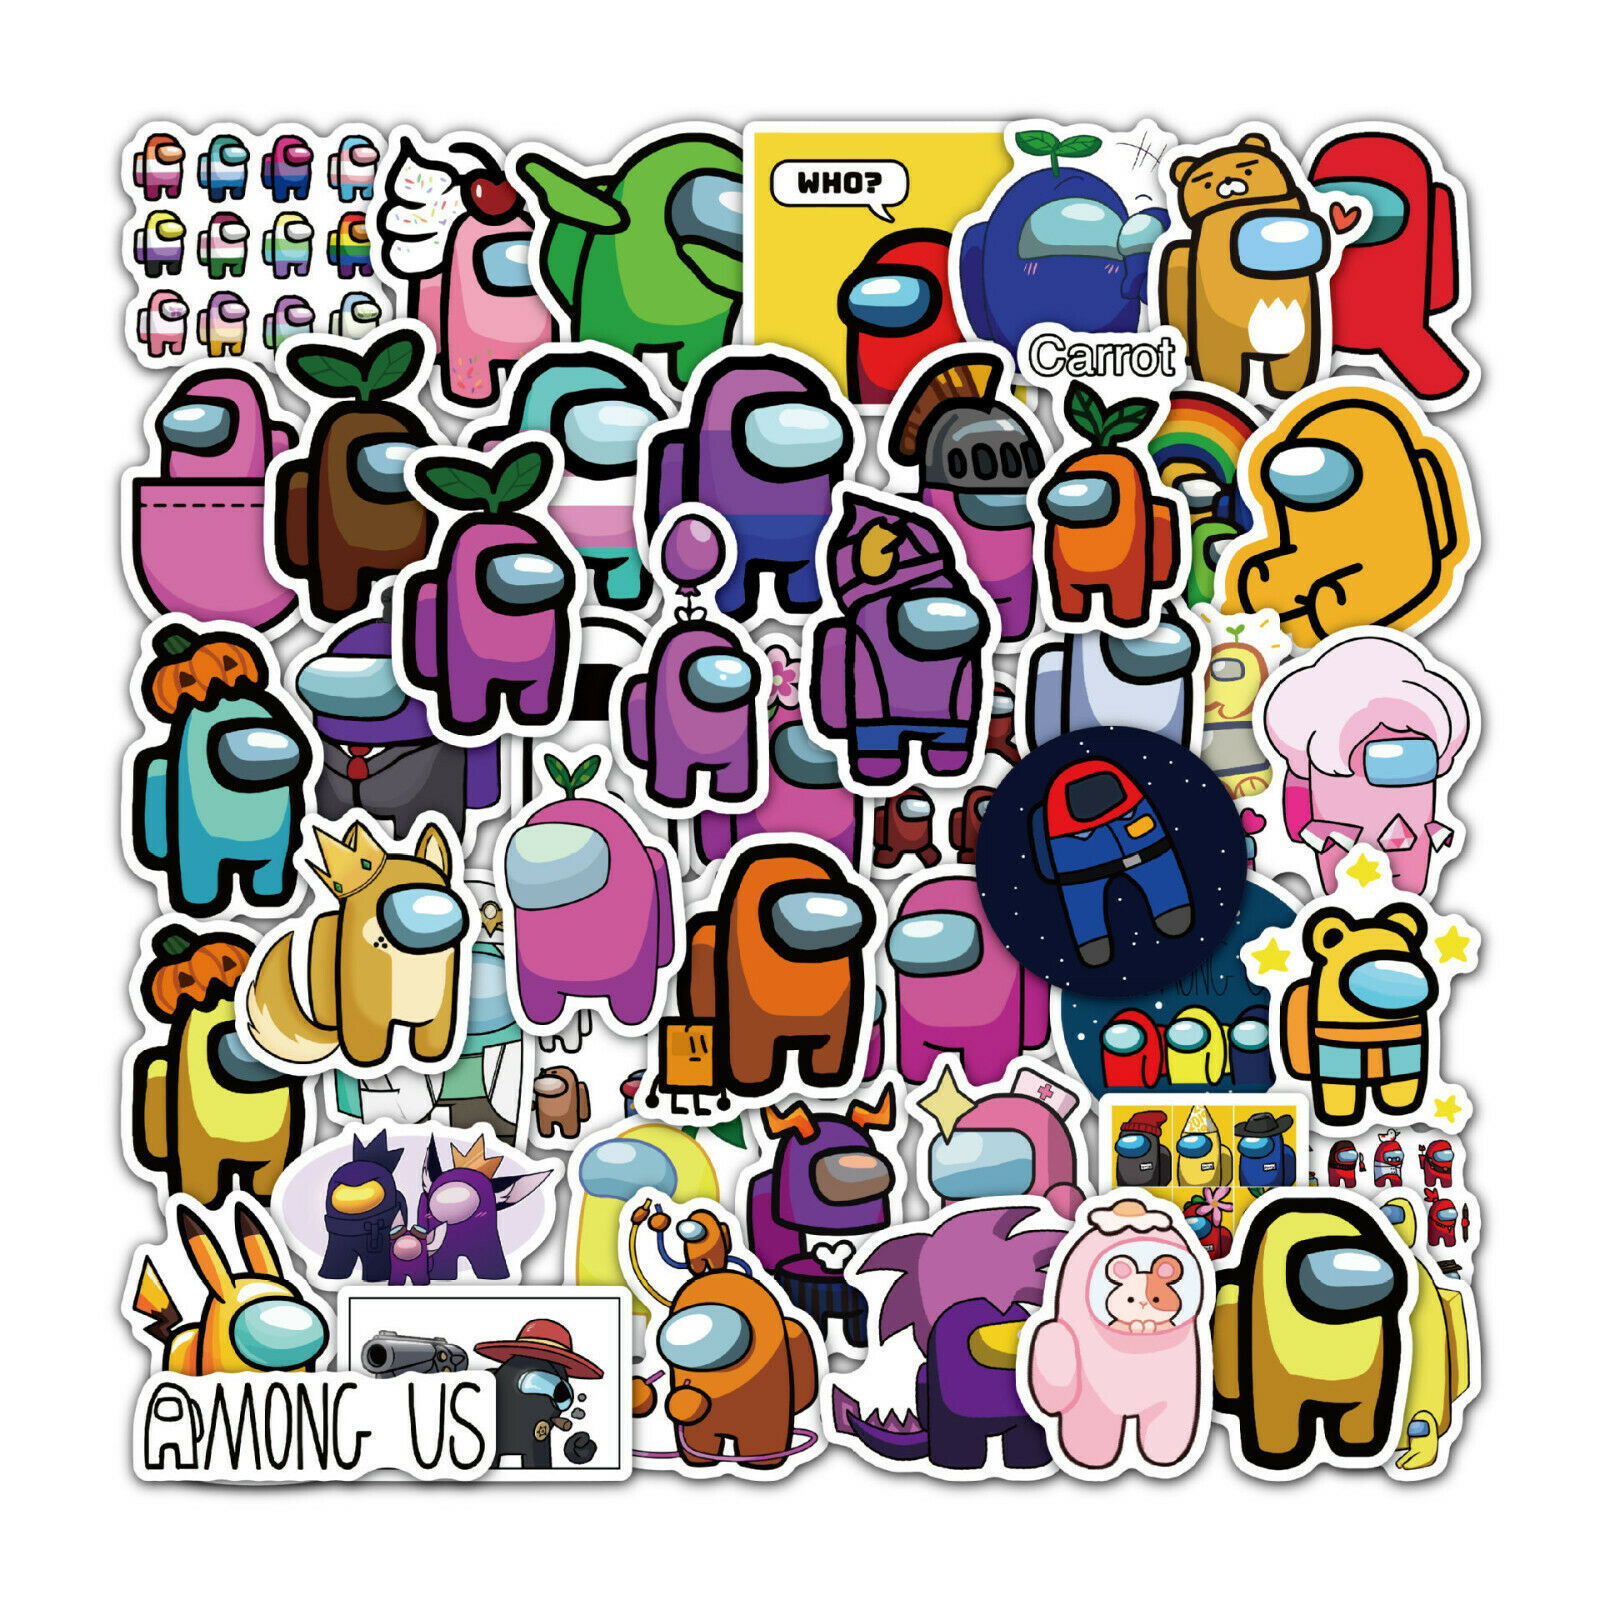 Home Decoration - 100pcs Among us Stickers for laptop, Hydroflask, Skateboard, waterproof vinyl